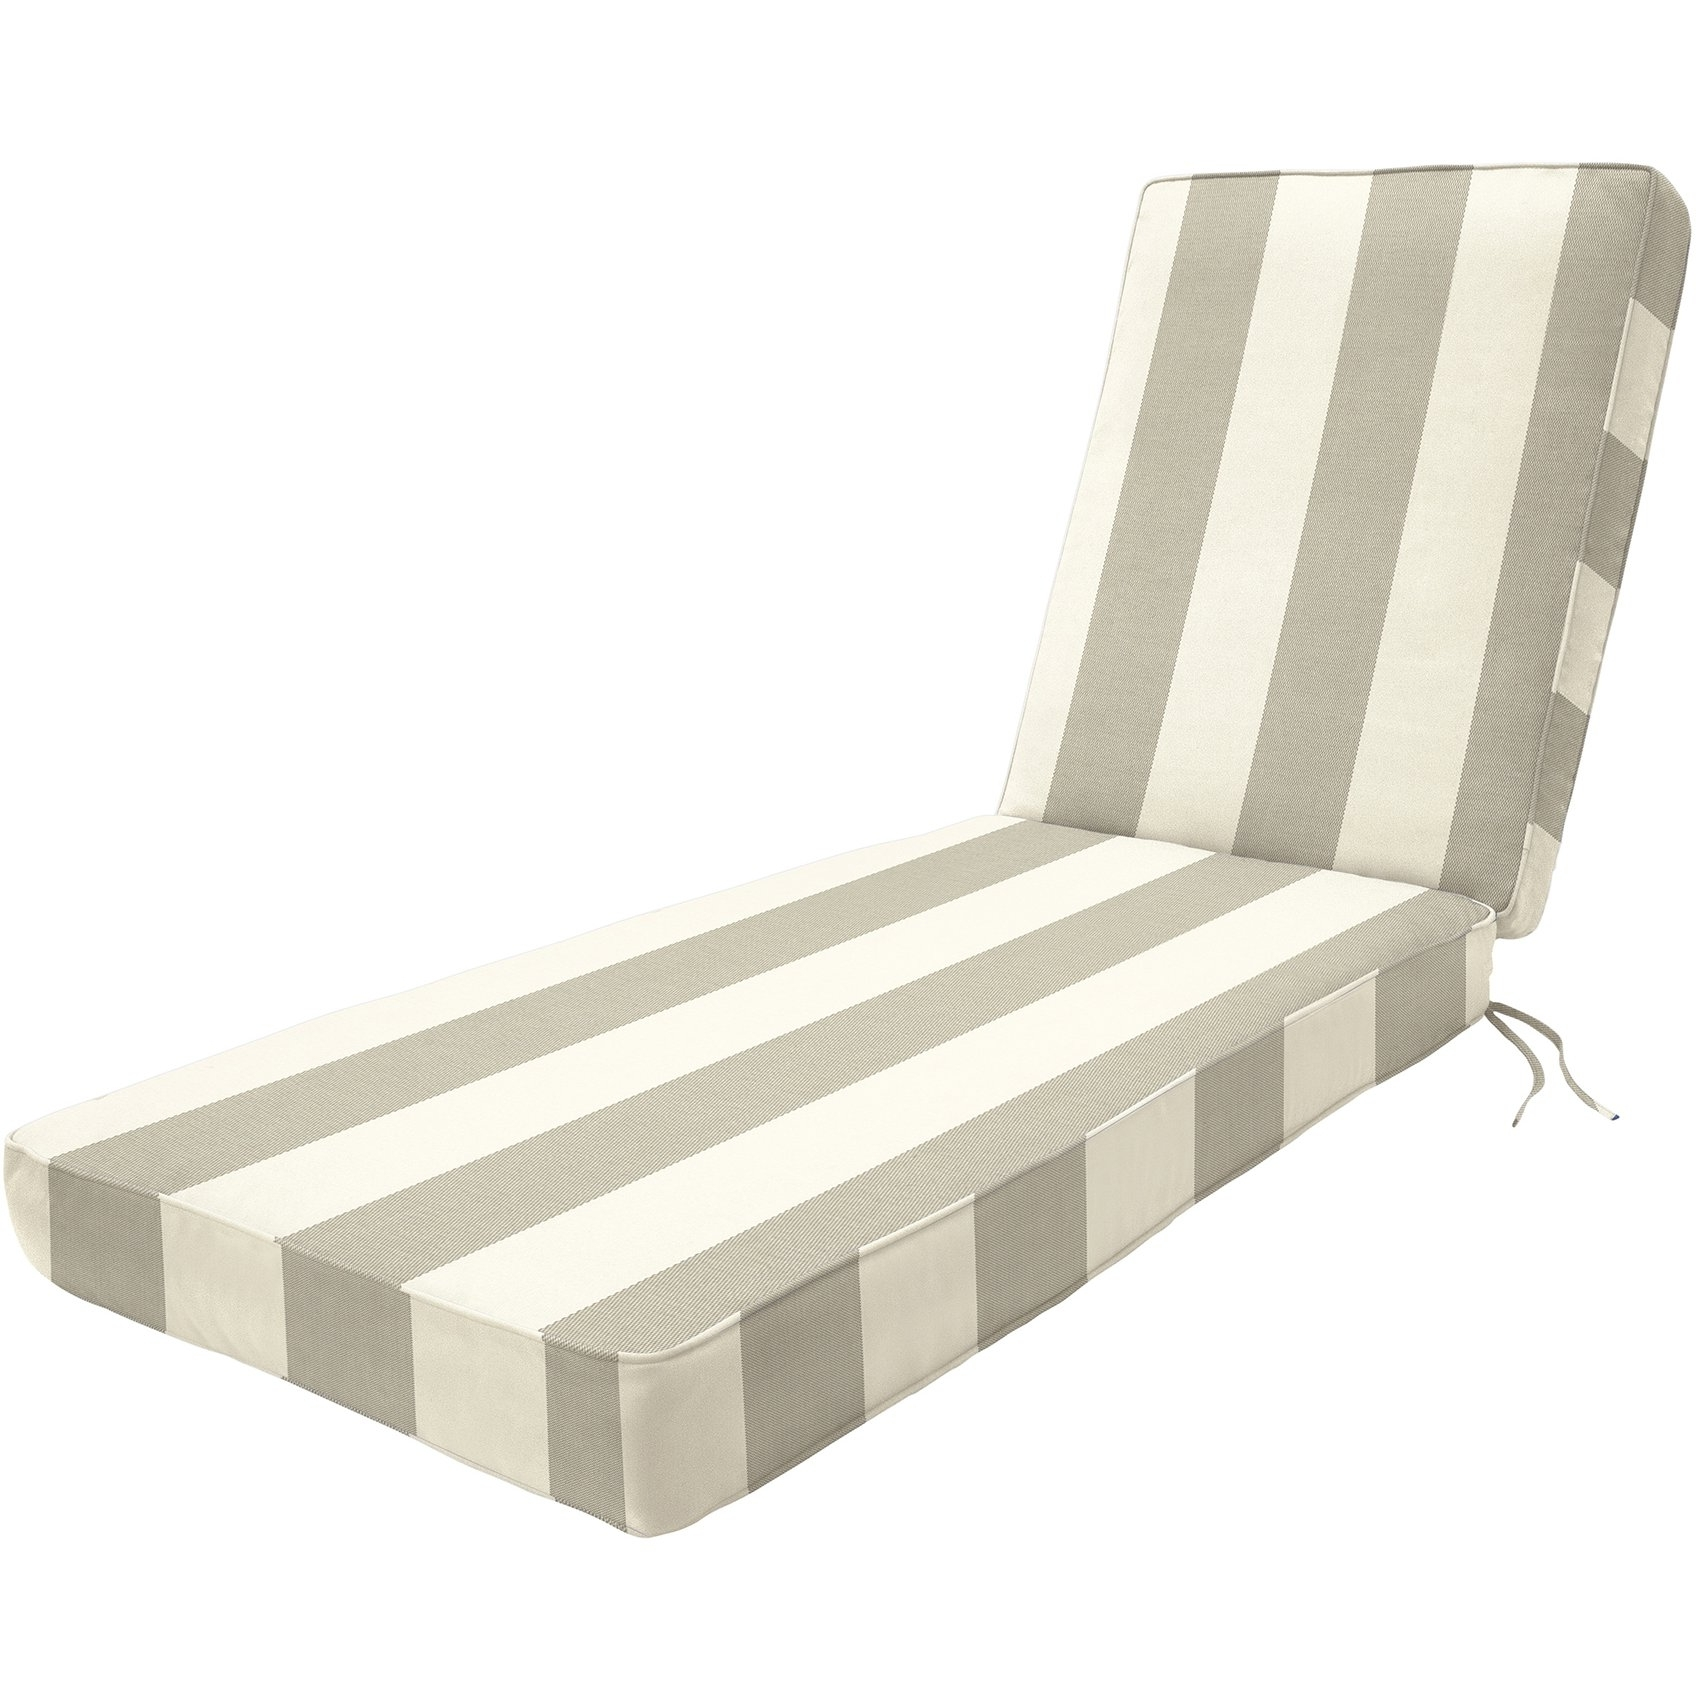 Oversized Chaise Lounge Cushions Outdoor Sun Lounge Cushions Sale For Popular Sunbrella Chaise Cushions (View 8 of 15)